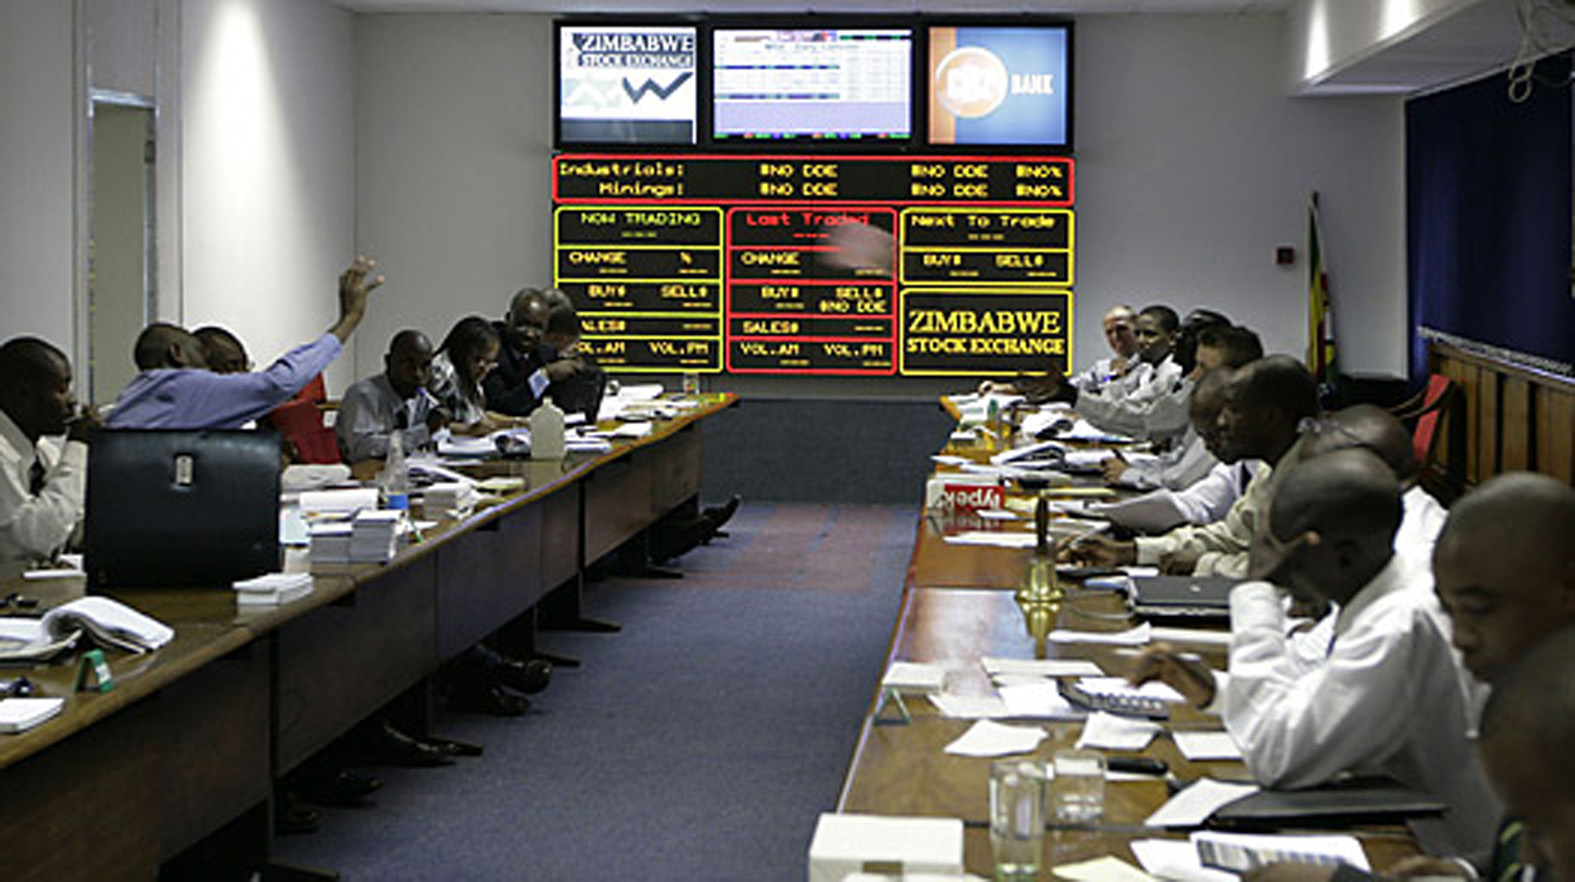 'Zimbabwe equities too expensive'